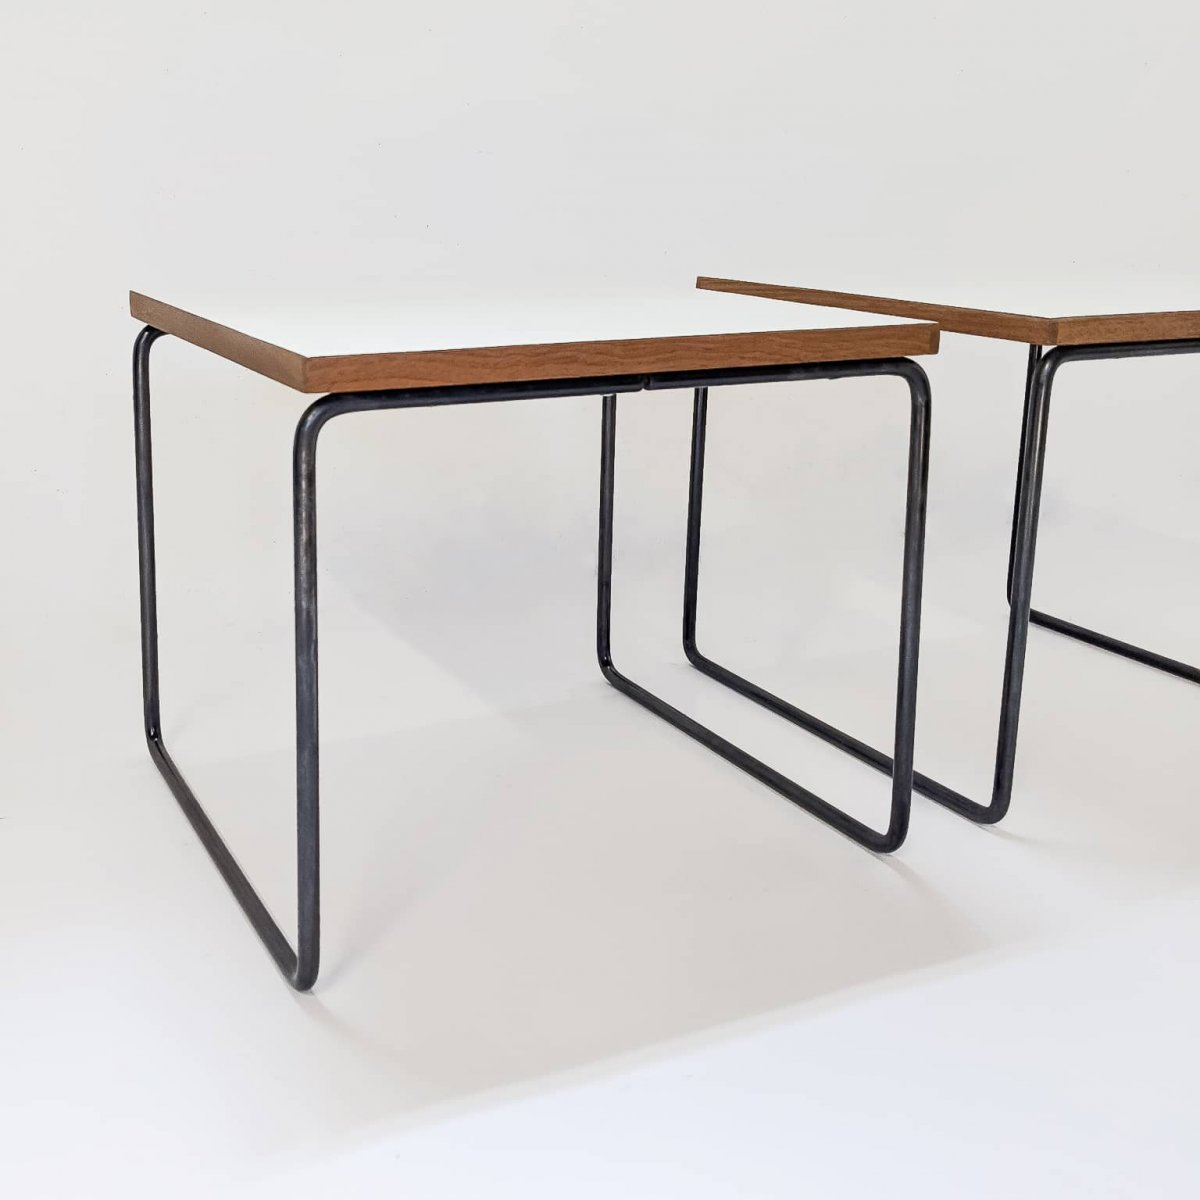 Duo Of Tables By Pierre Guariche, Steiner Edition 1955-photo-2